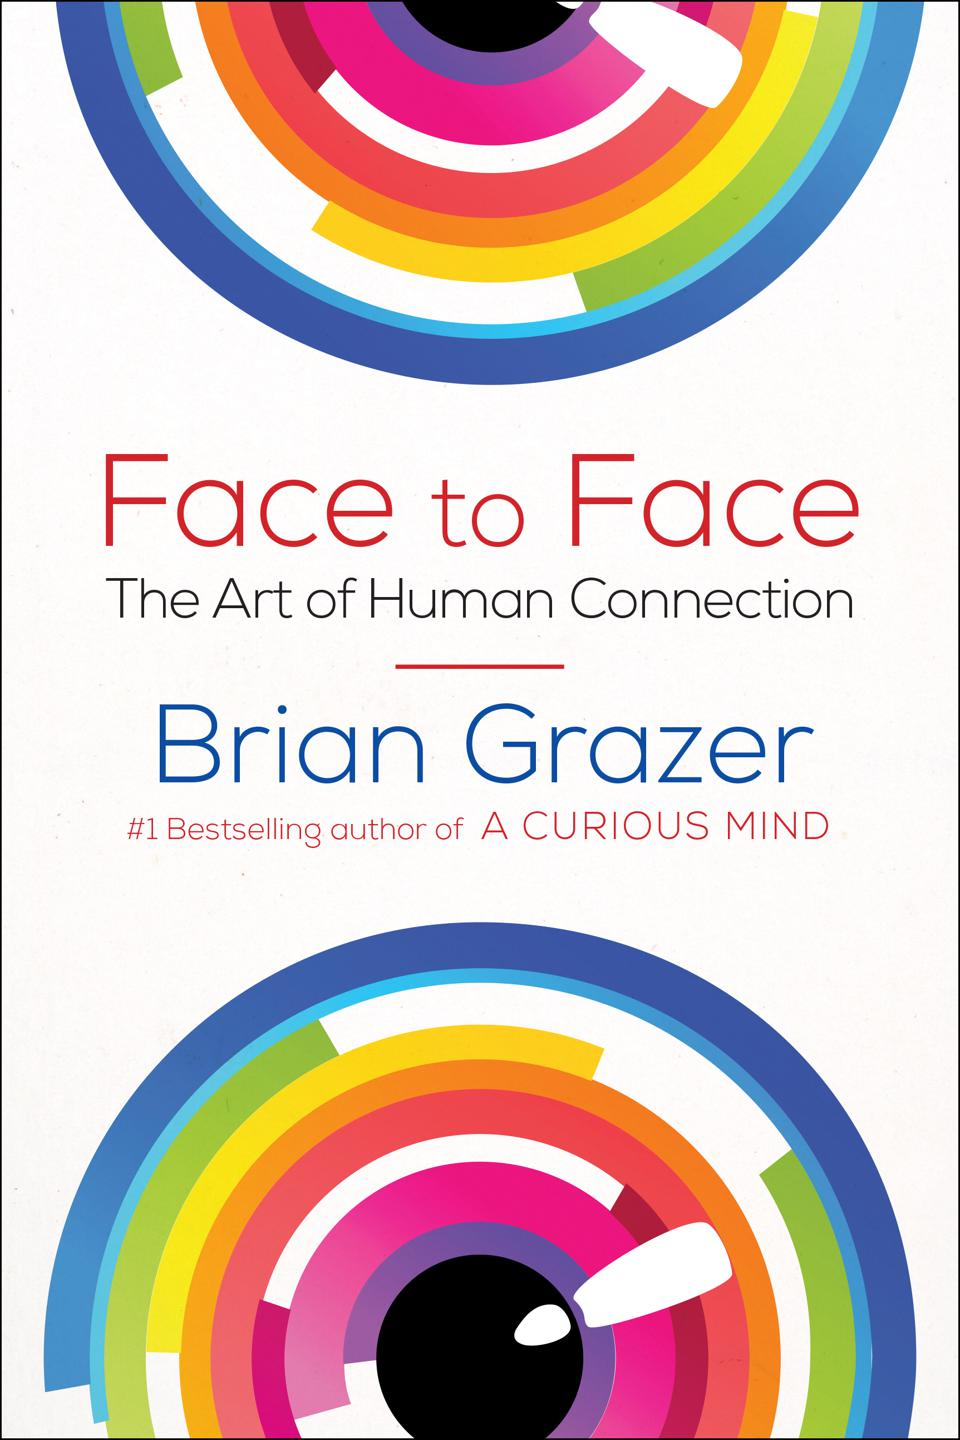 Hollywood film producer Brian Grazer writes about the the art of human connection